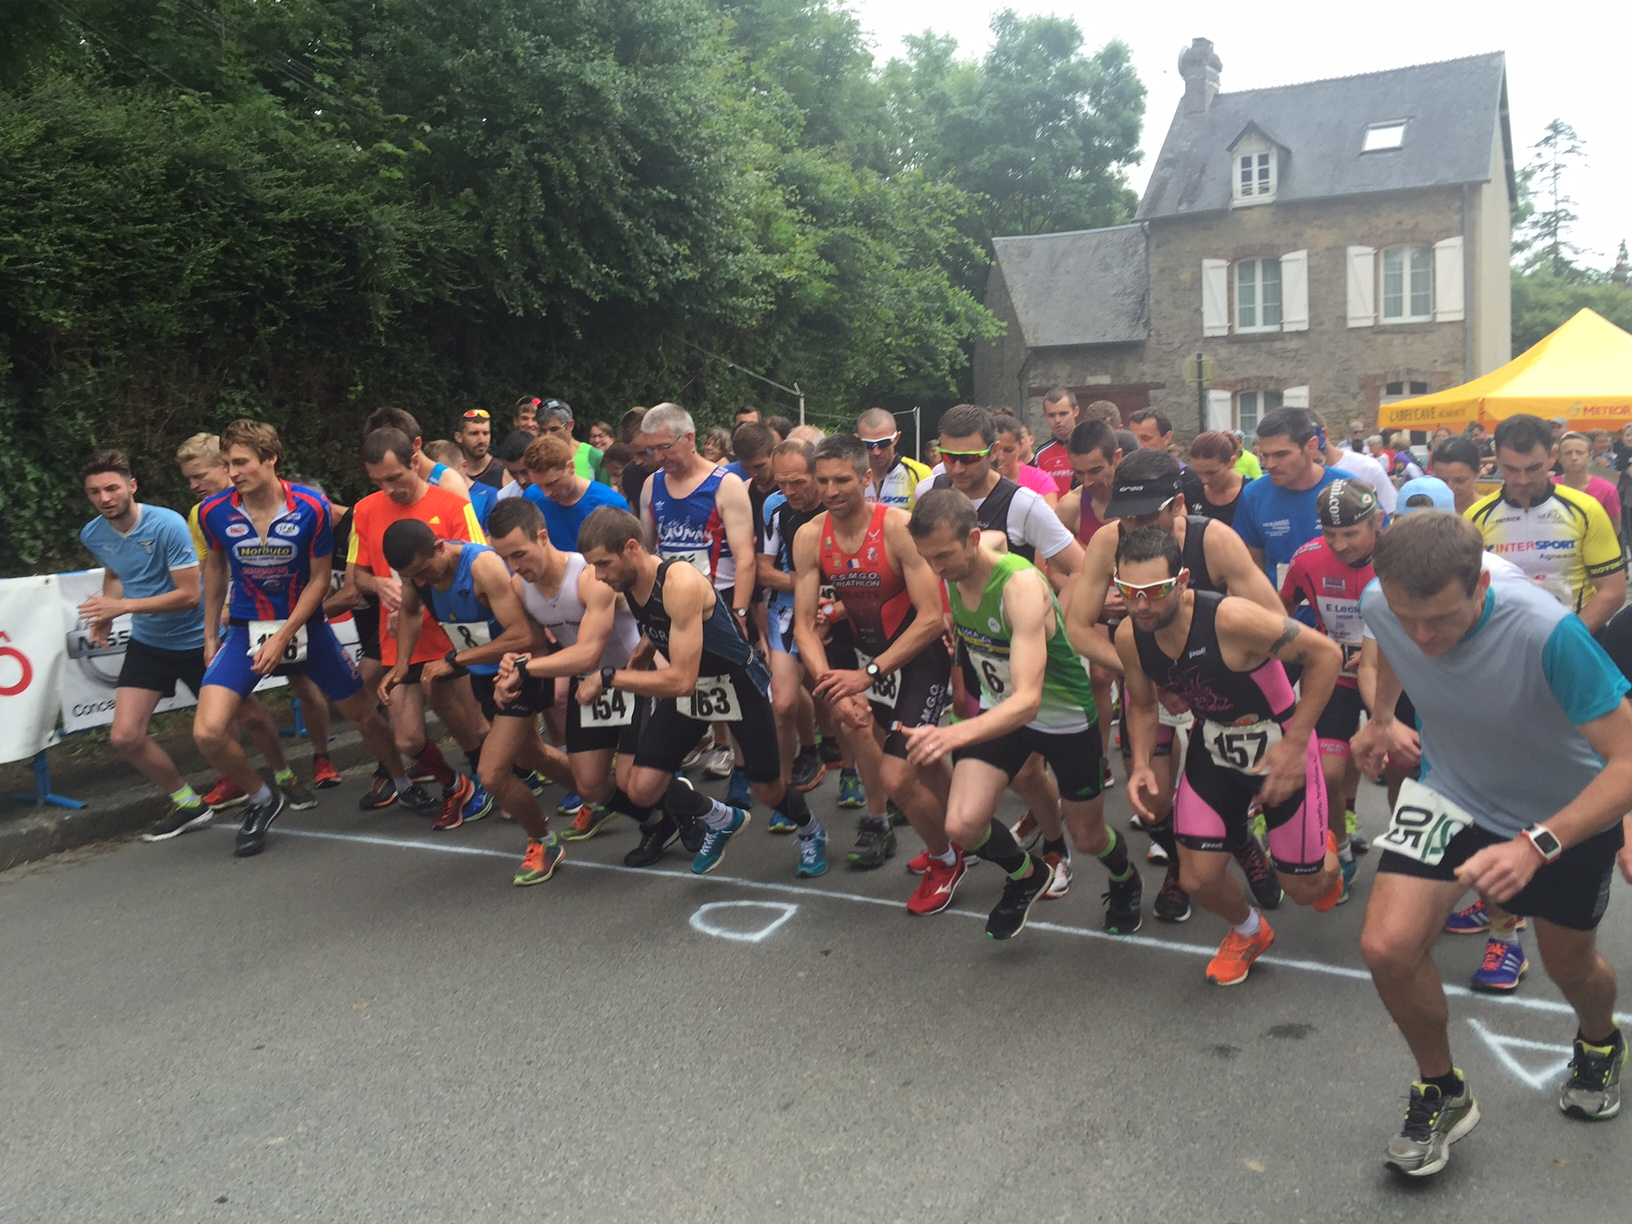 26 eme duathlon de Saint Pierre de Semilly